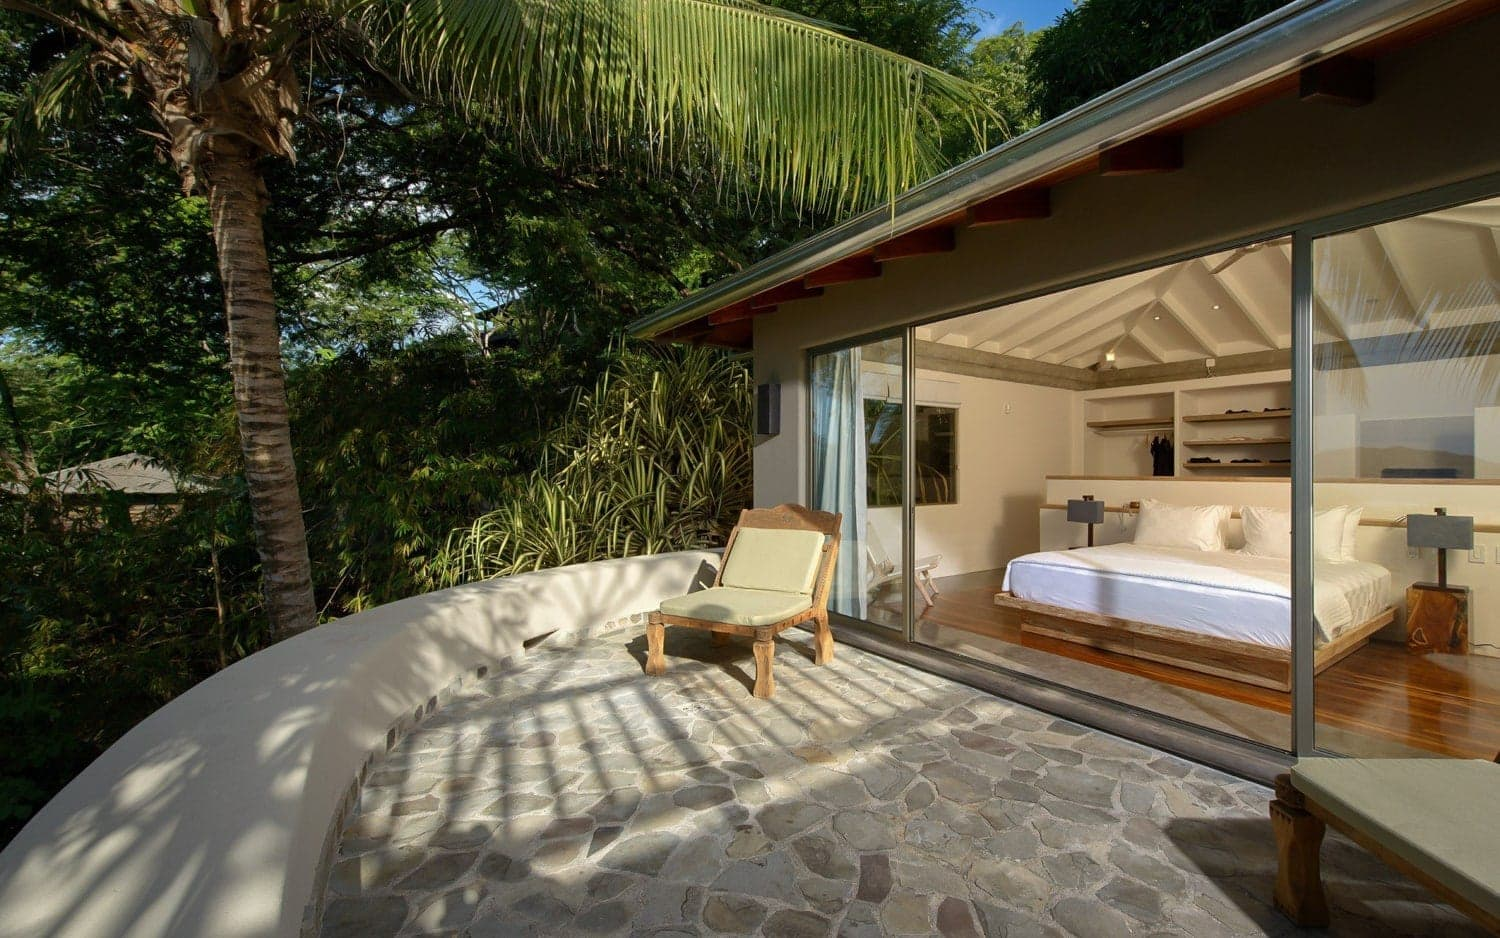 Exterior view of honeymoon suite at Sunset House in Tamarindo.